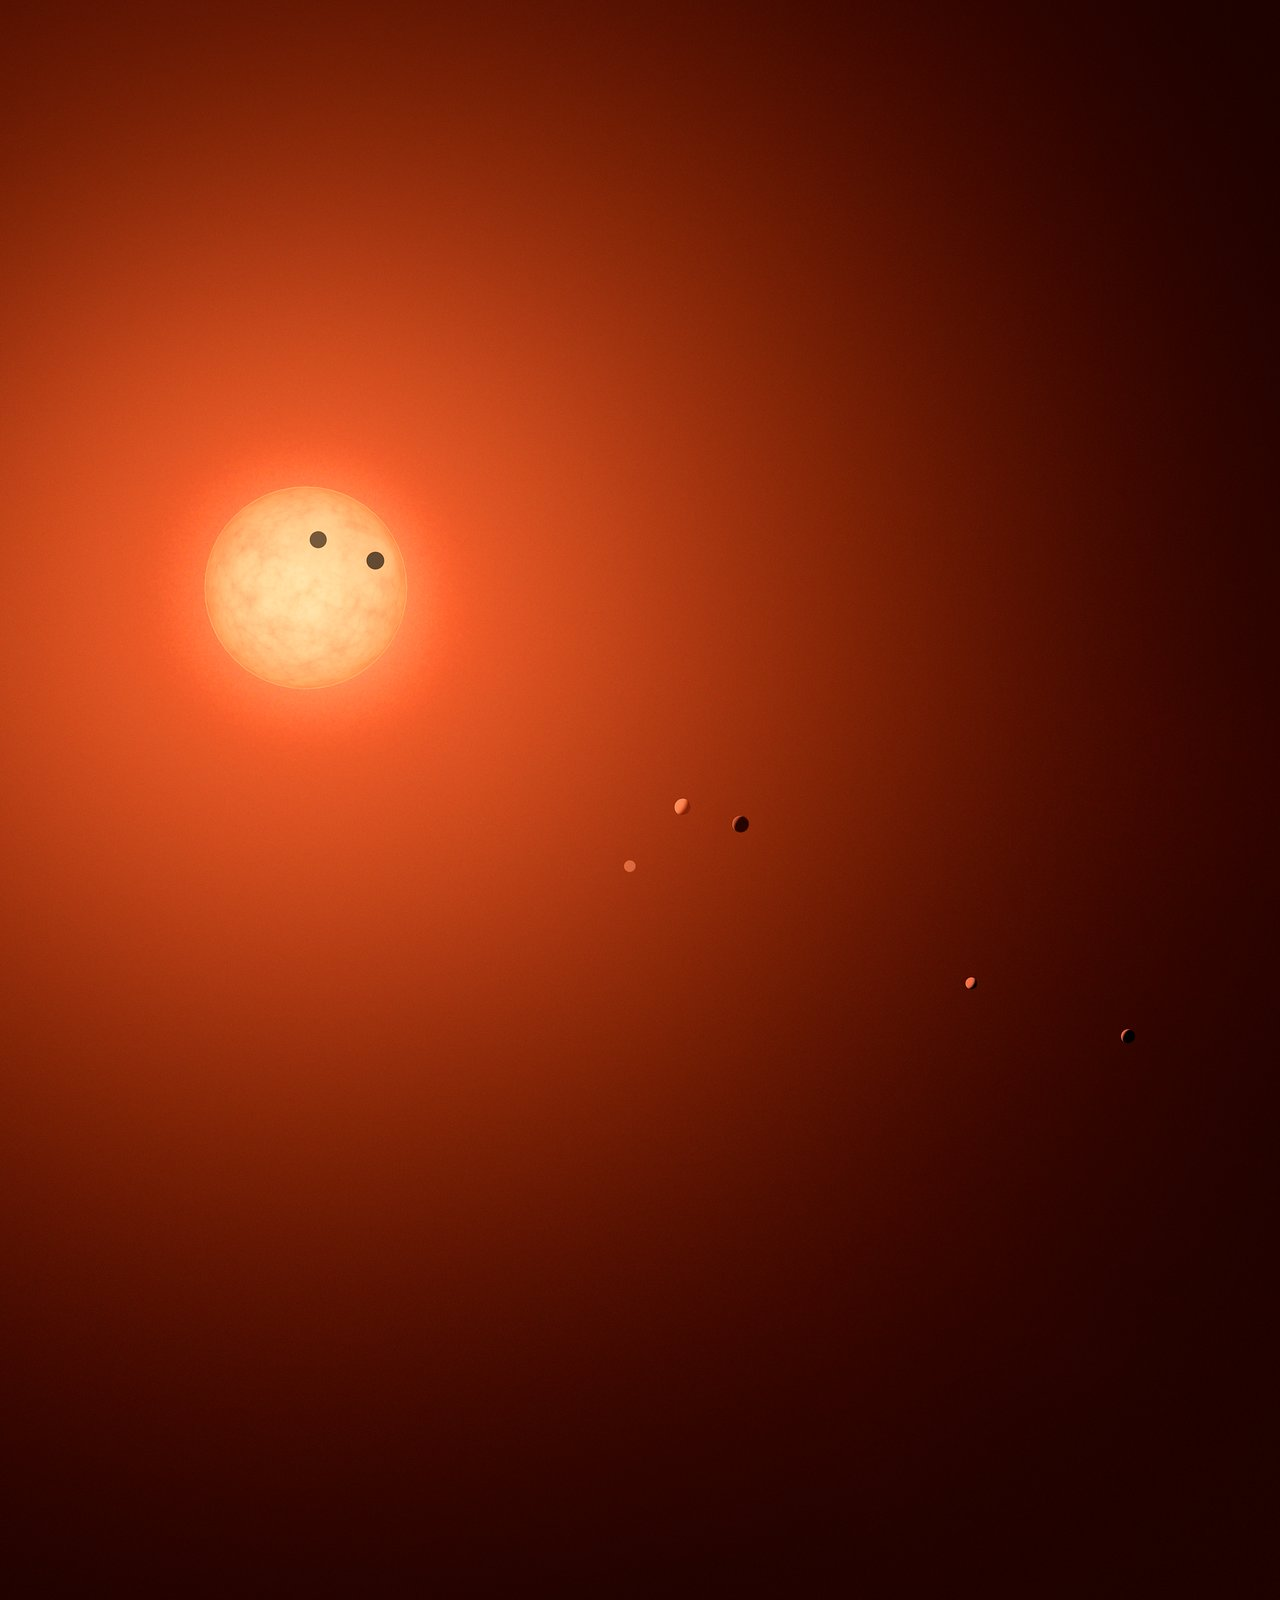 Seven planets orbiting the ultracool dwarf star TRAPPIST-1